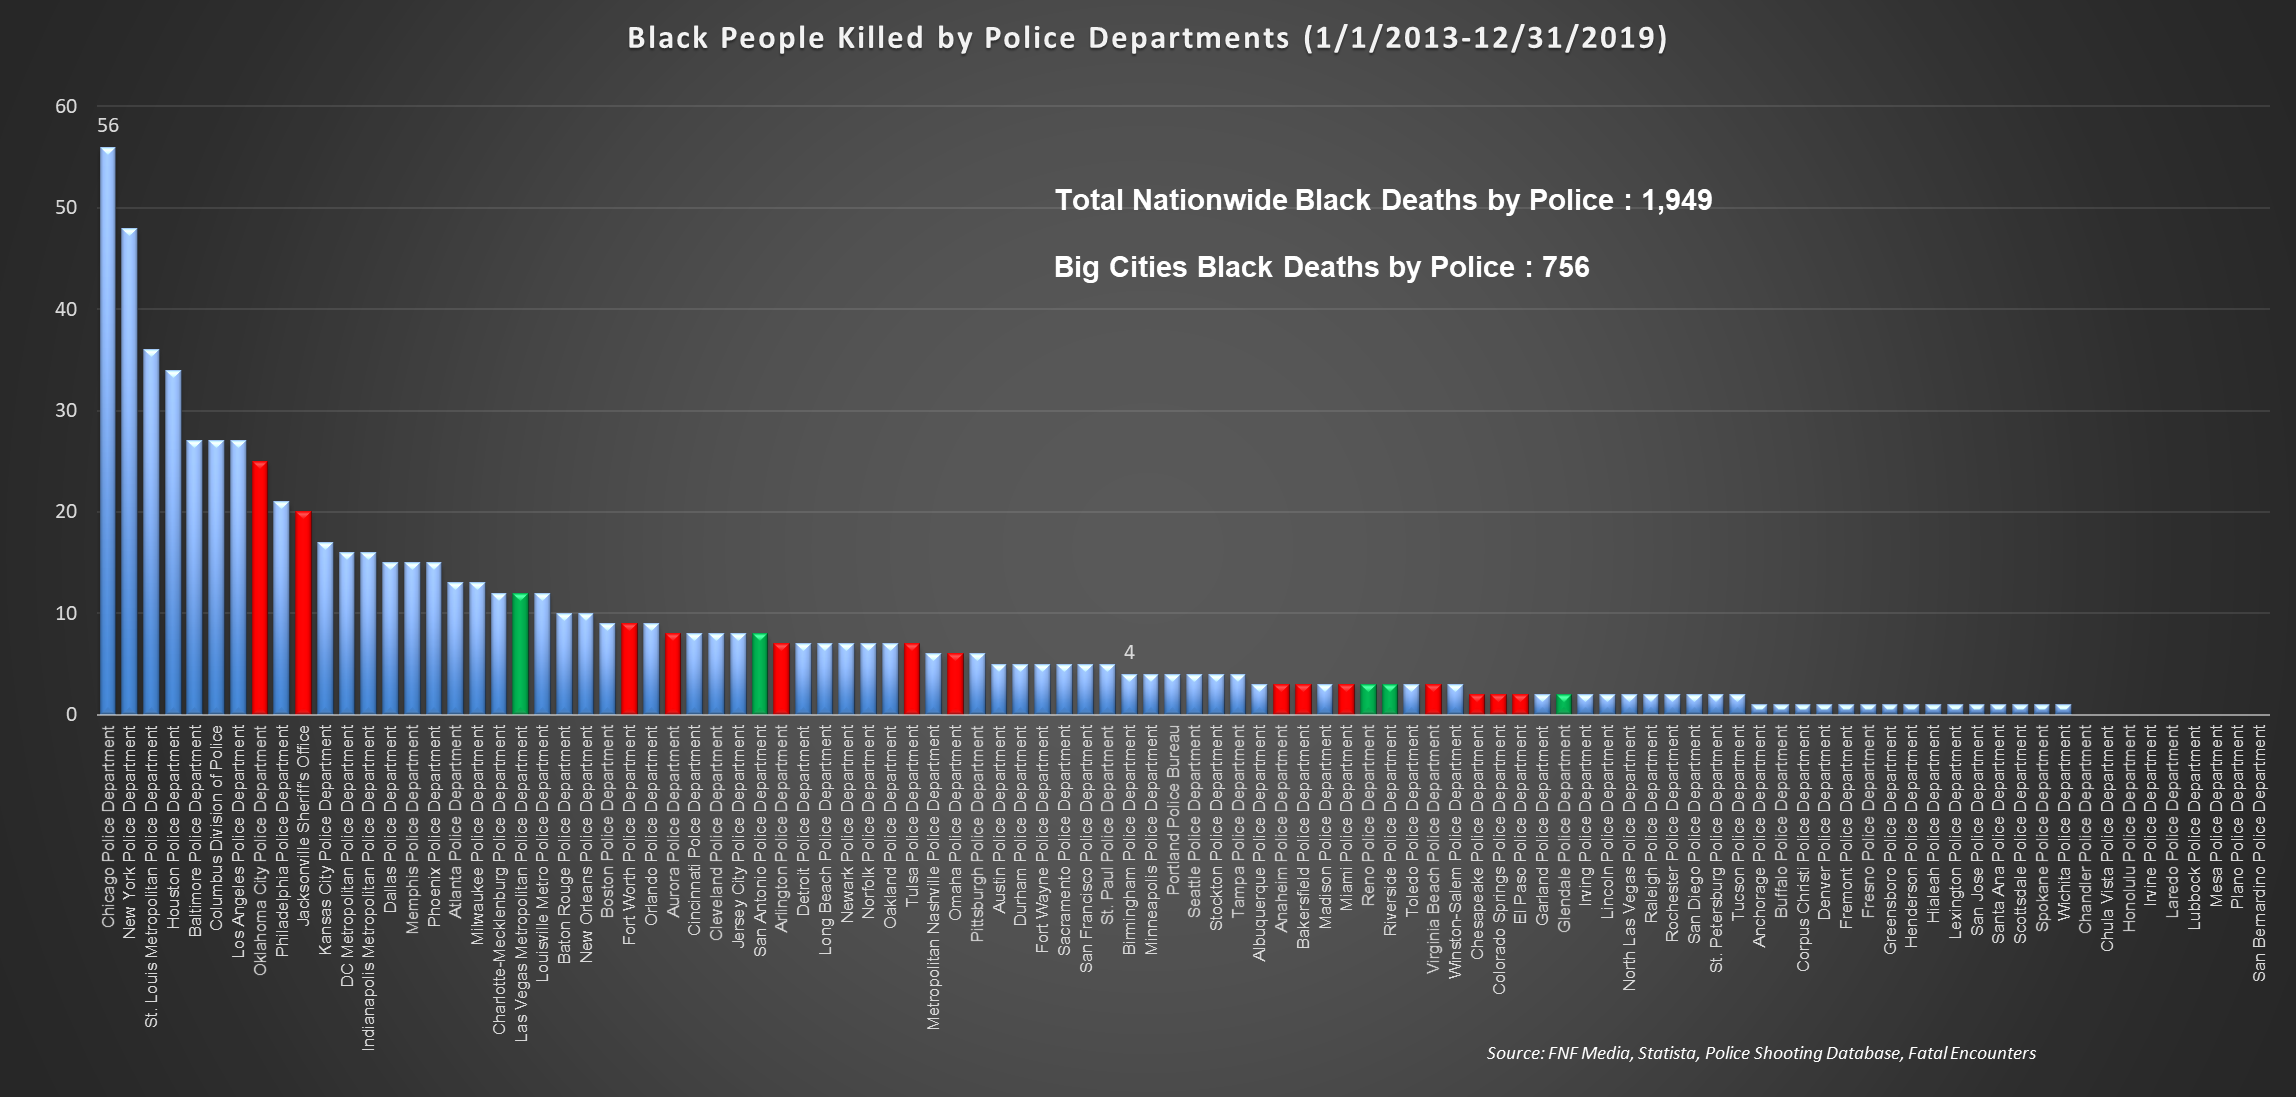 Black Deaths by Police by Year